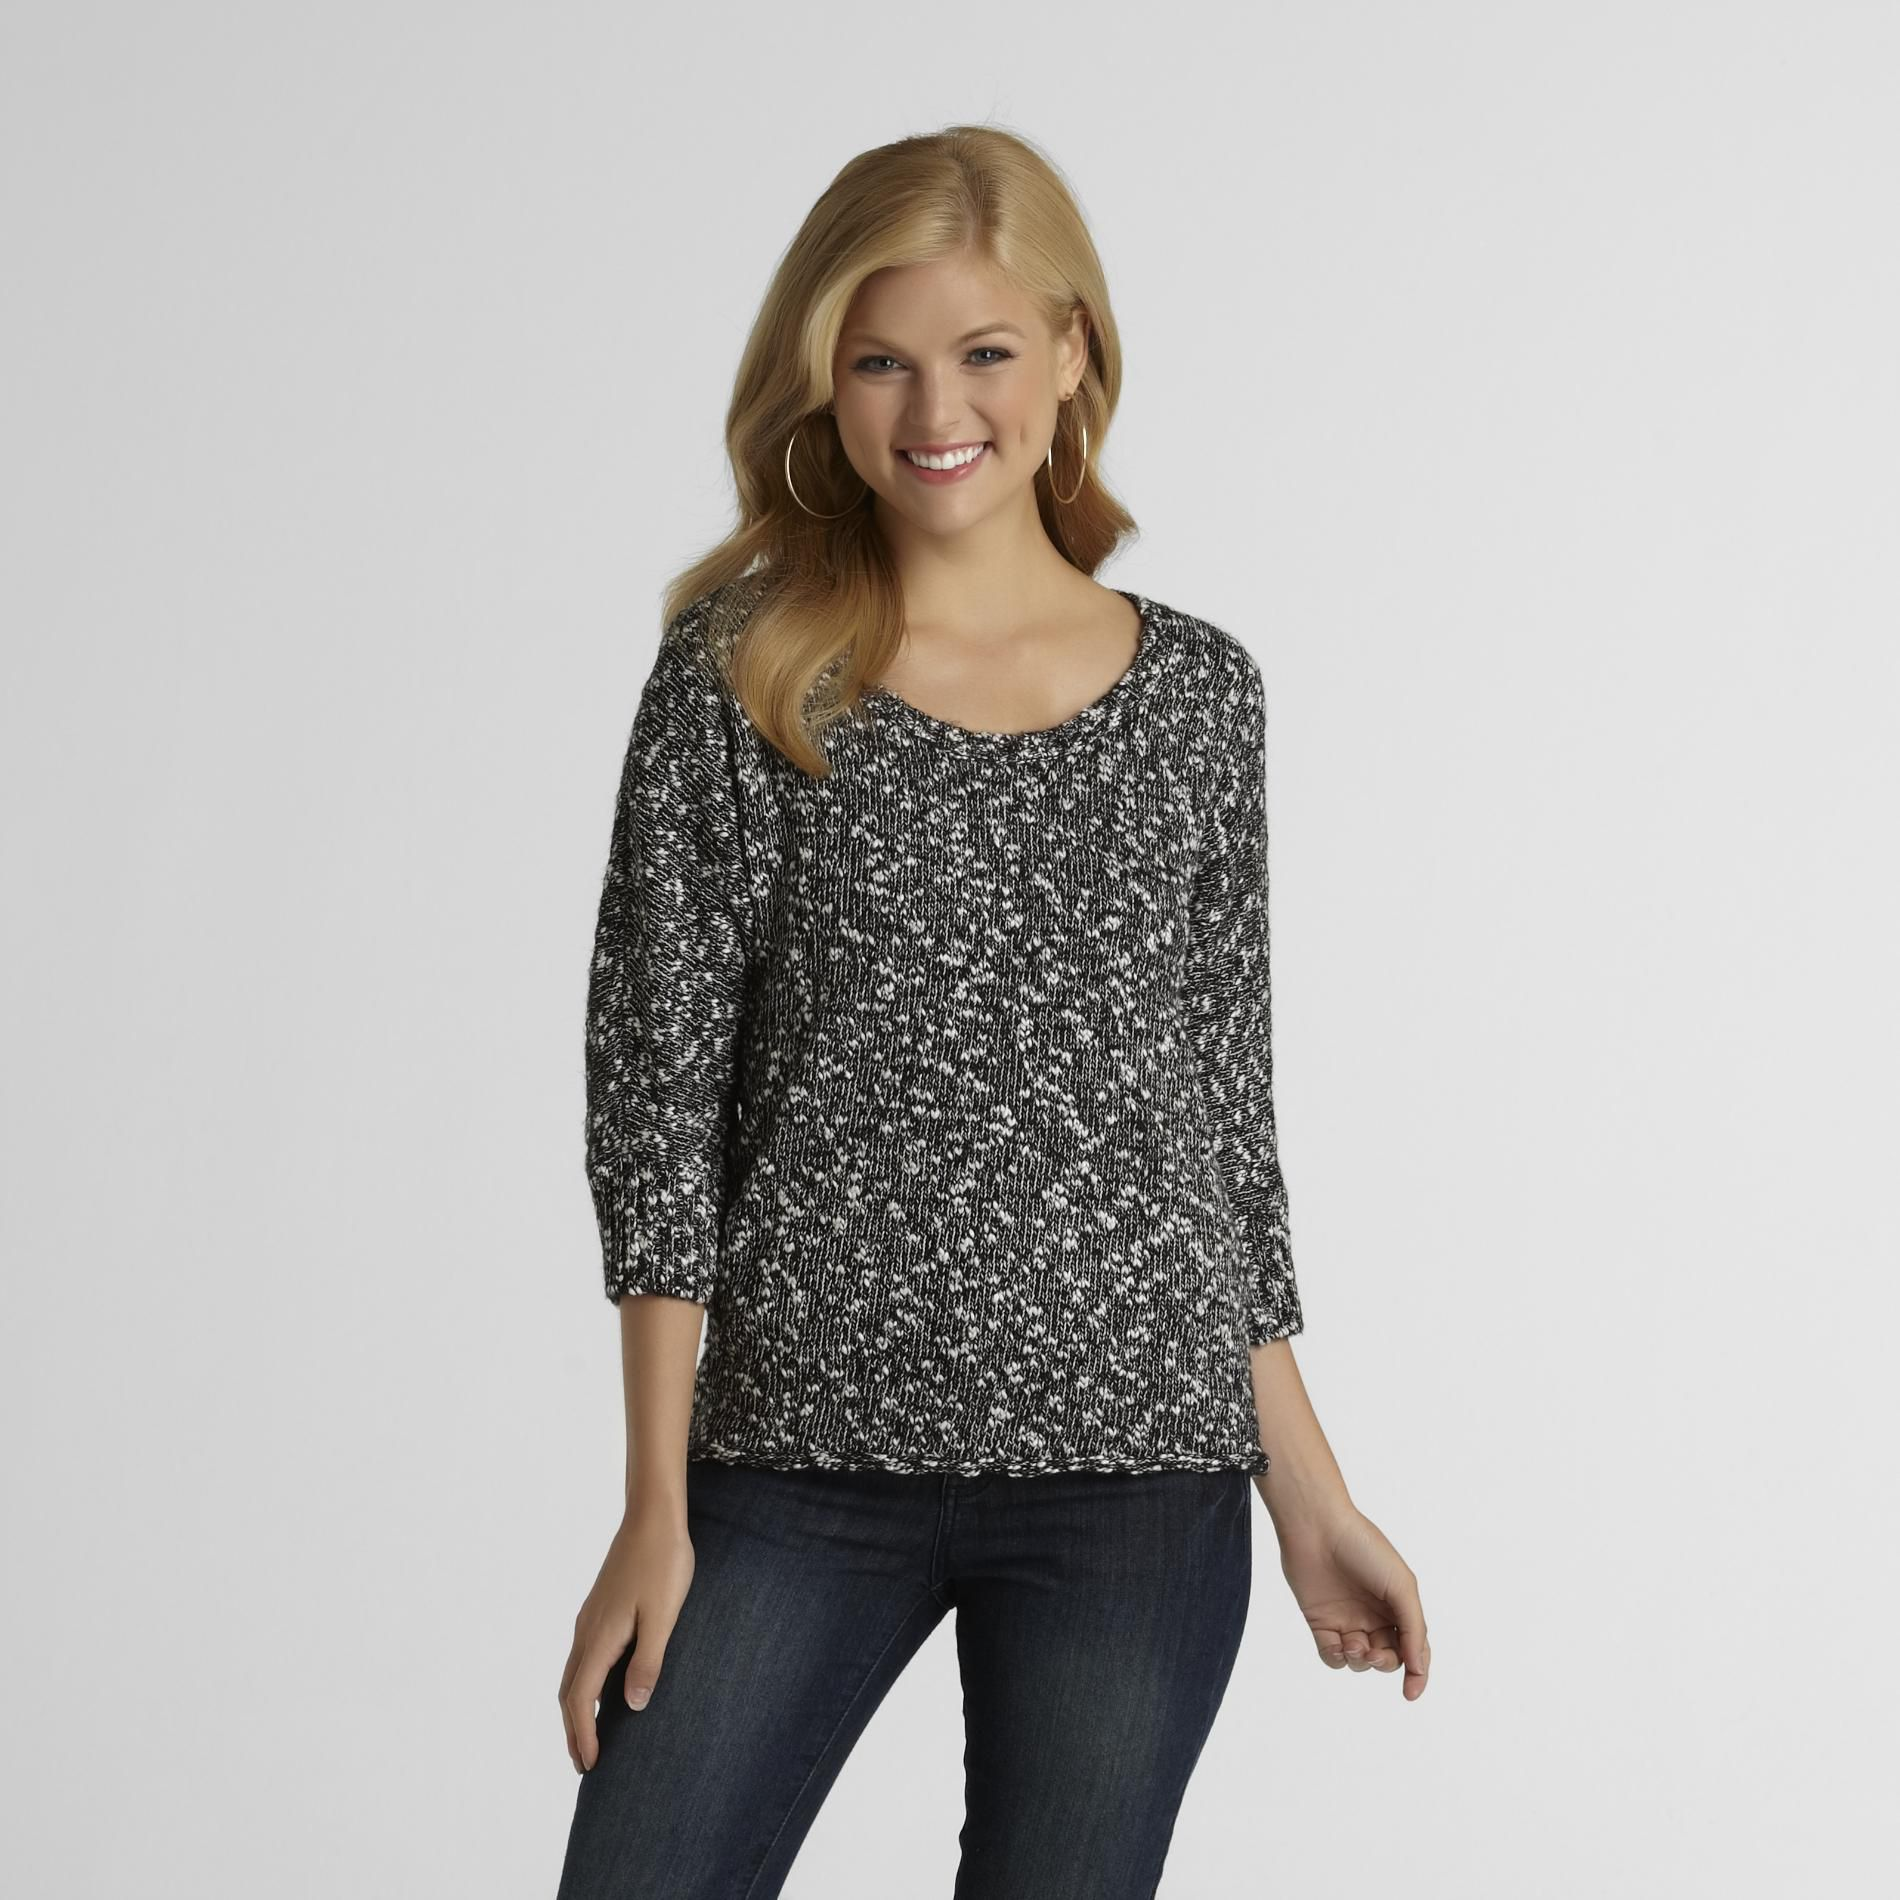 Route 66 Women's Marled Knit Sweater - Clearance at Kmart.com